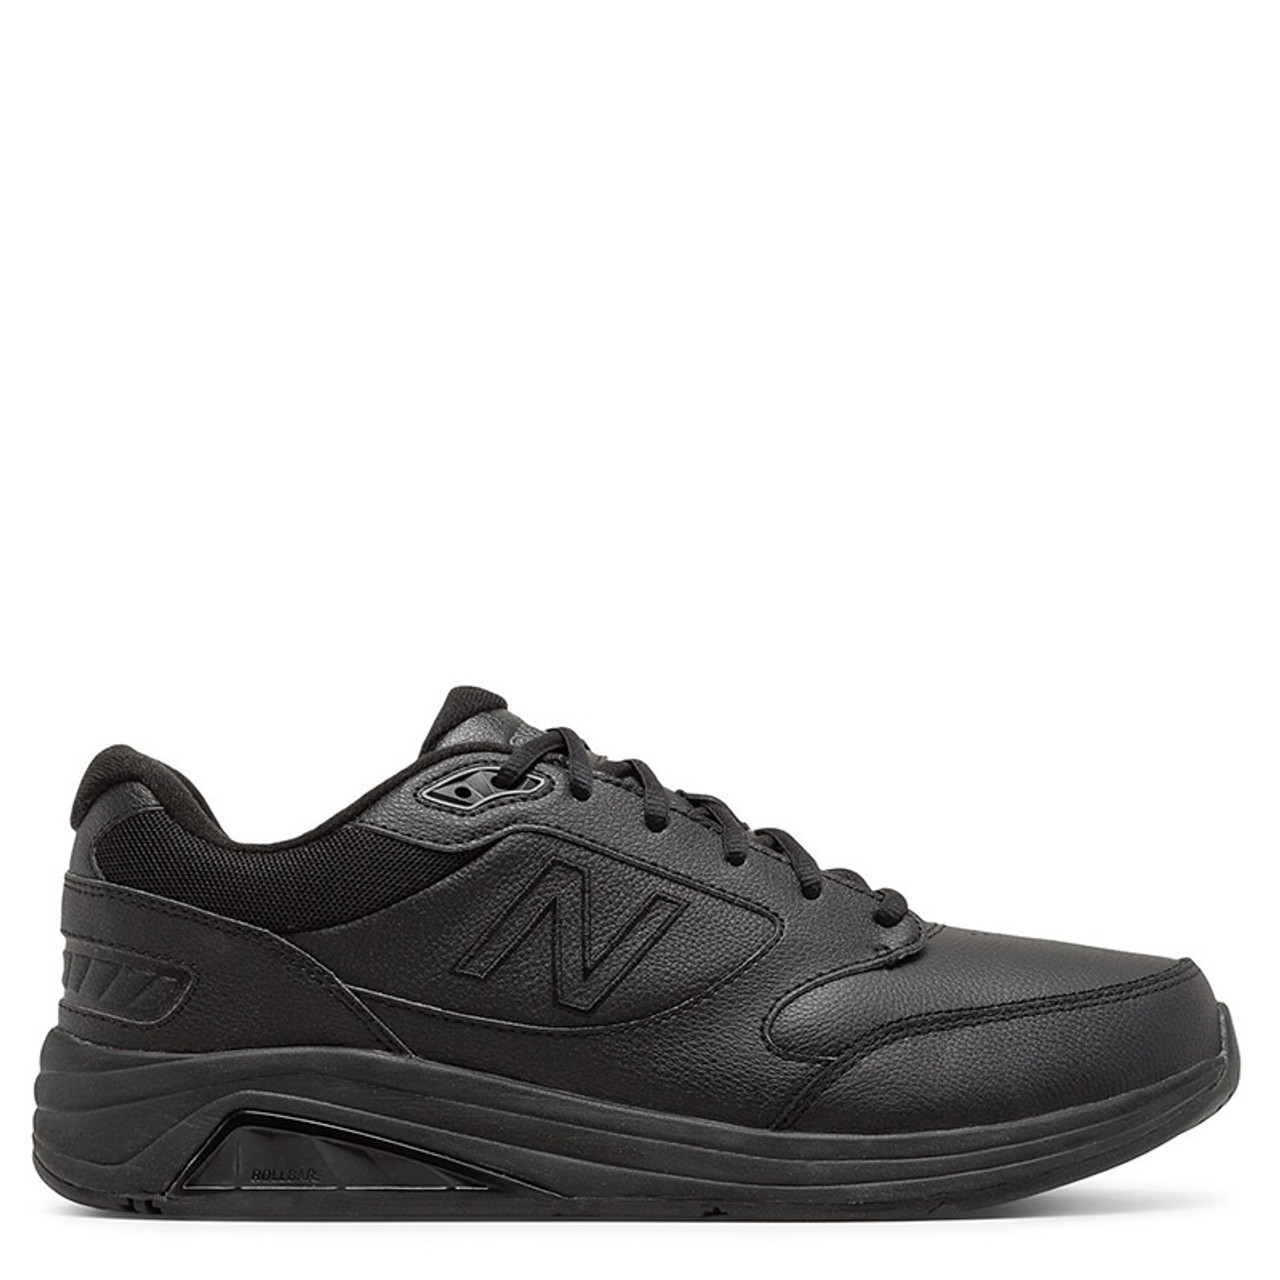 8a7498b9d5e93 New Balance 928v3 Men's Black Leather Walking Sneakers - Family Footwear  Center